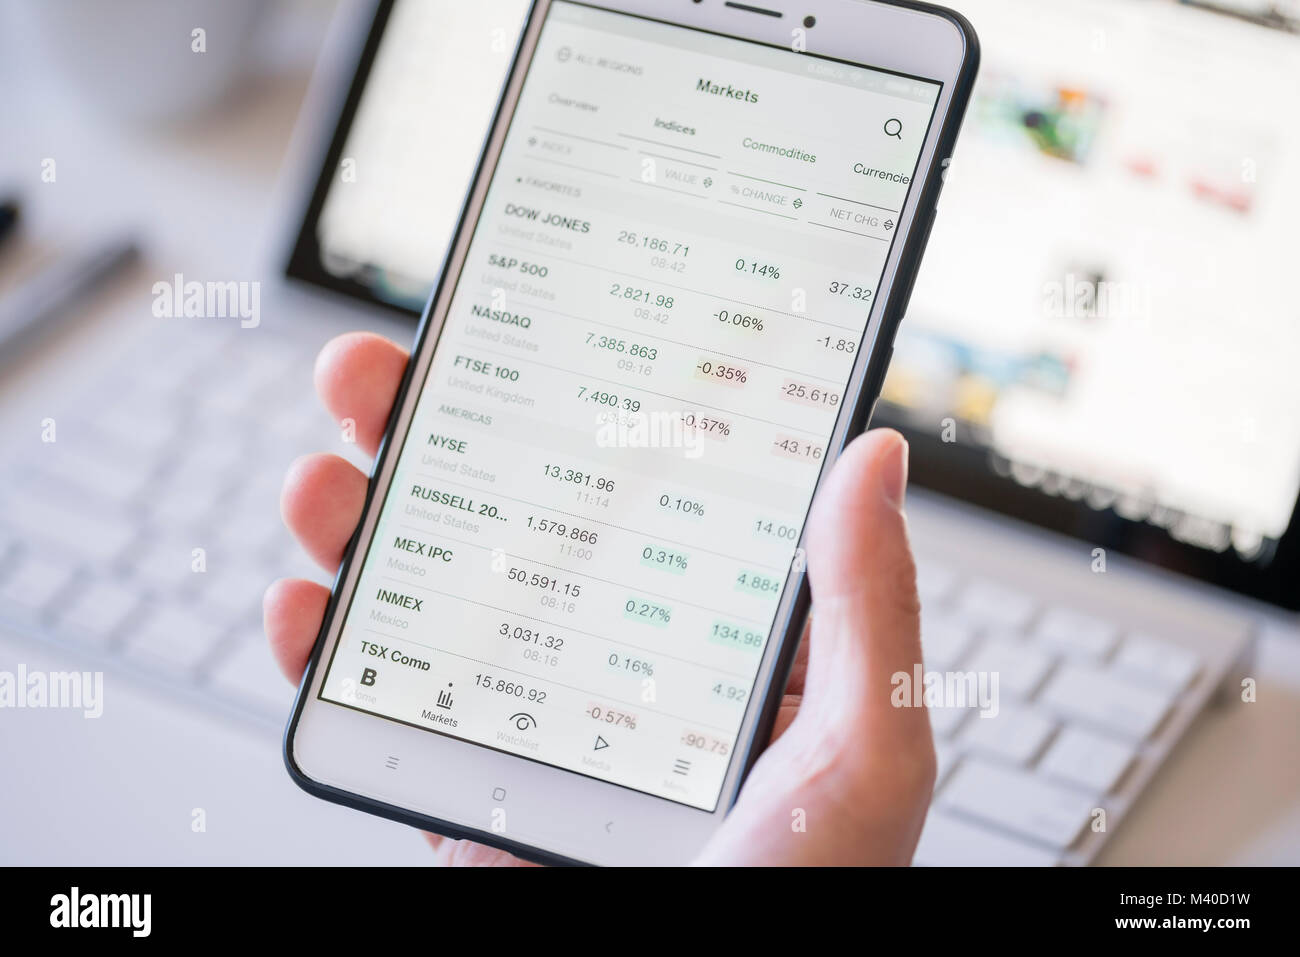 Checking stock market indices on a smartphone - Stock Image